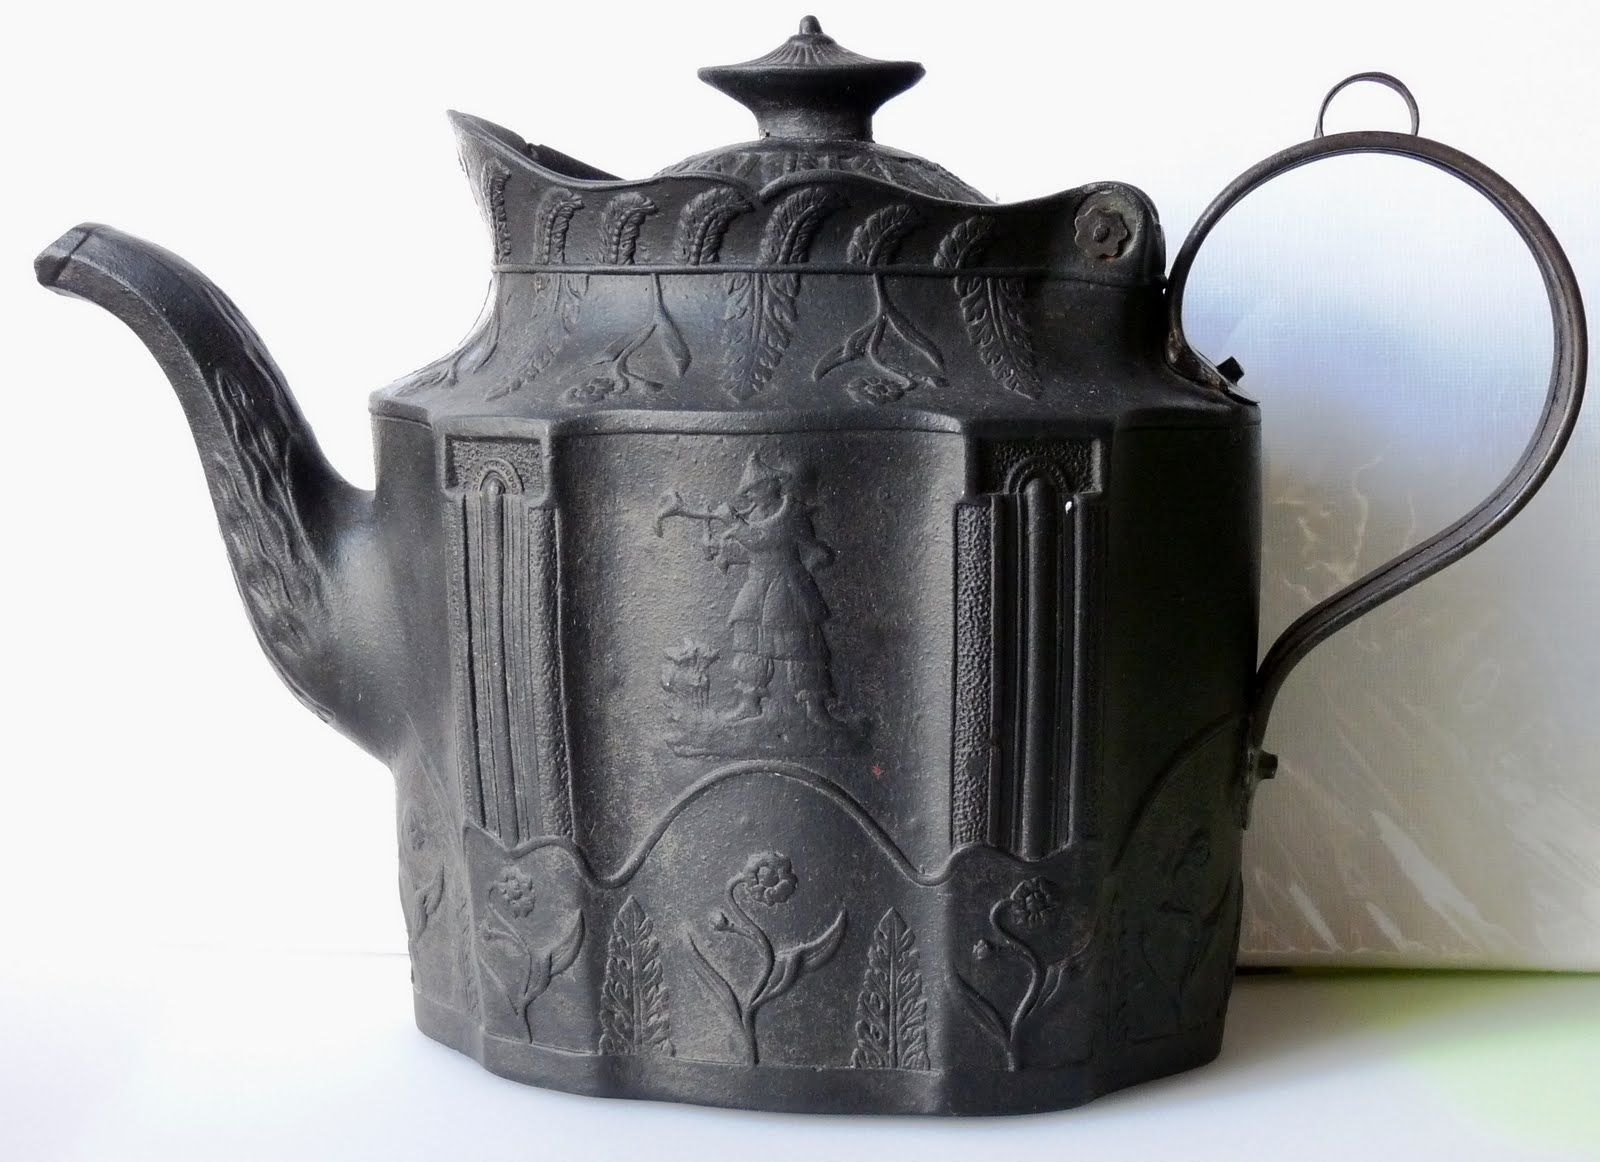 Beautiful Teapot Beautiful Antique Basalt Teapot Made In England C1800